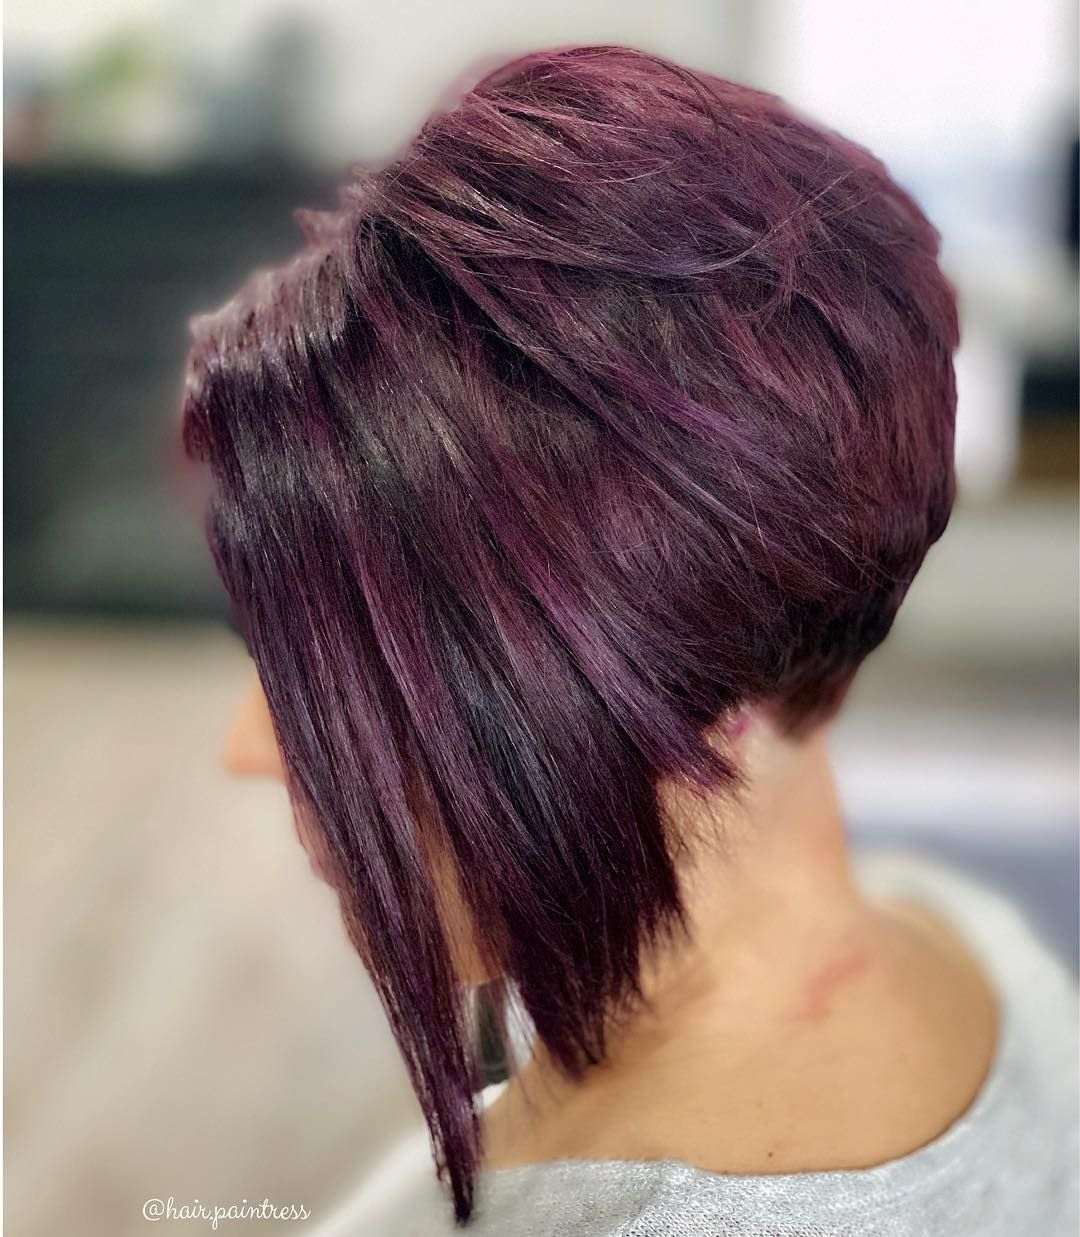 Violet Bob Stacked High For Dramatic Angle Angled Bob Hairstyles Angled Bob Haircuts Choppy Bob Hairstyles